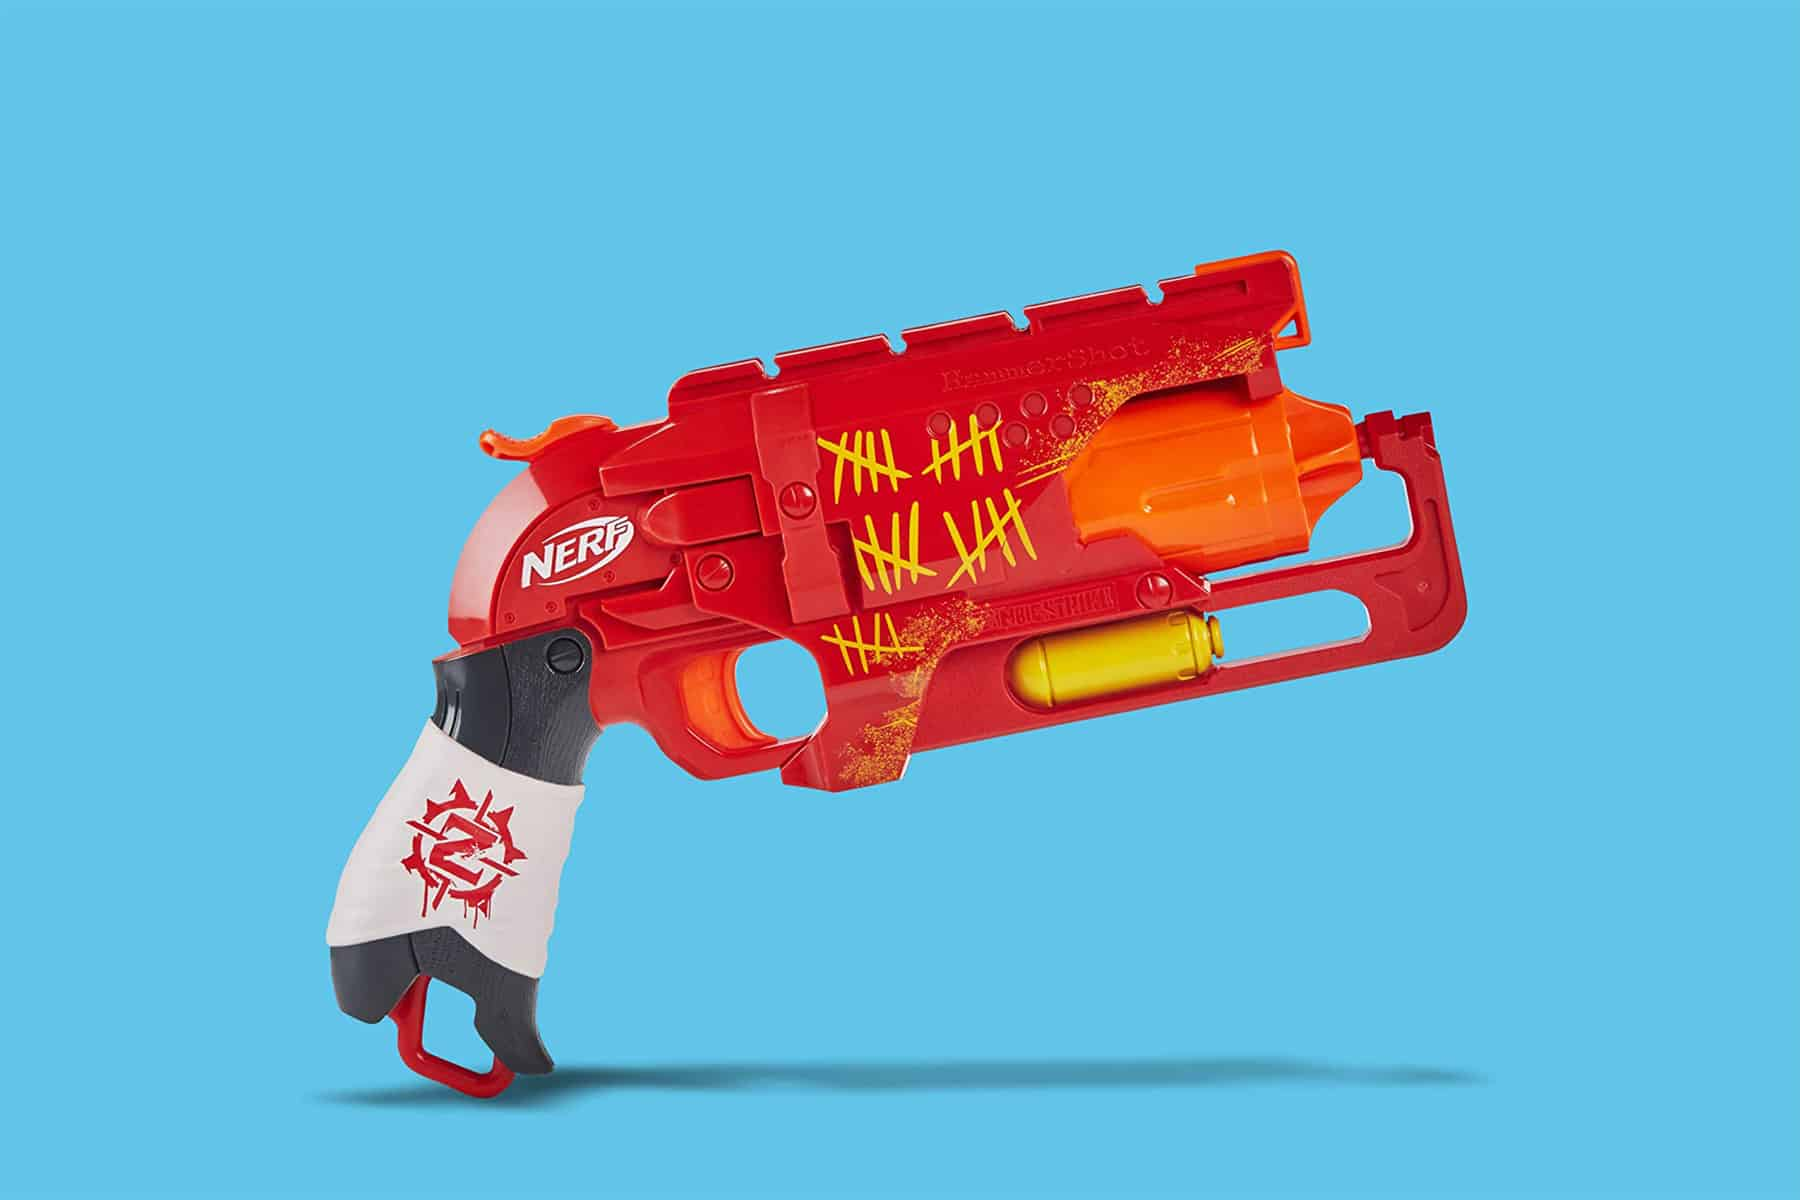 This is the cover photo for our Best Nerf Pistols article. It features a red, white, and orange Nerf pistols overlaid on a blue background.